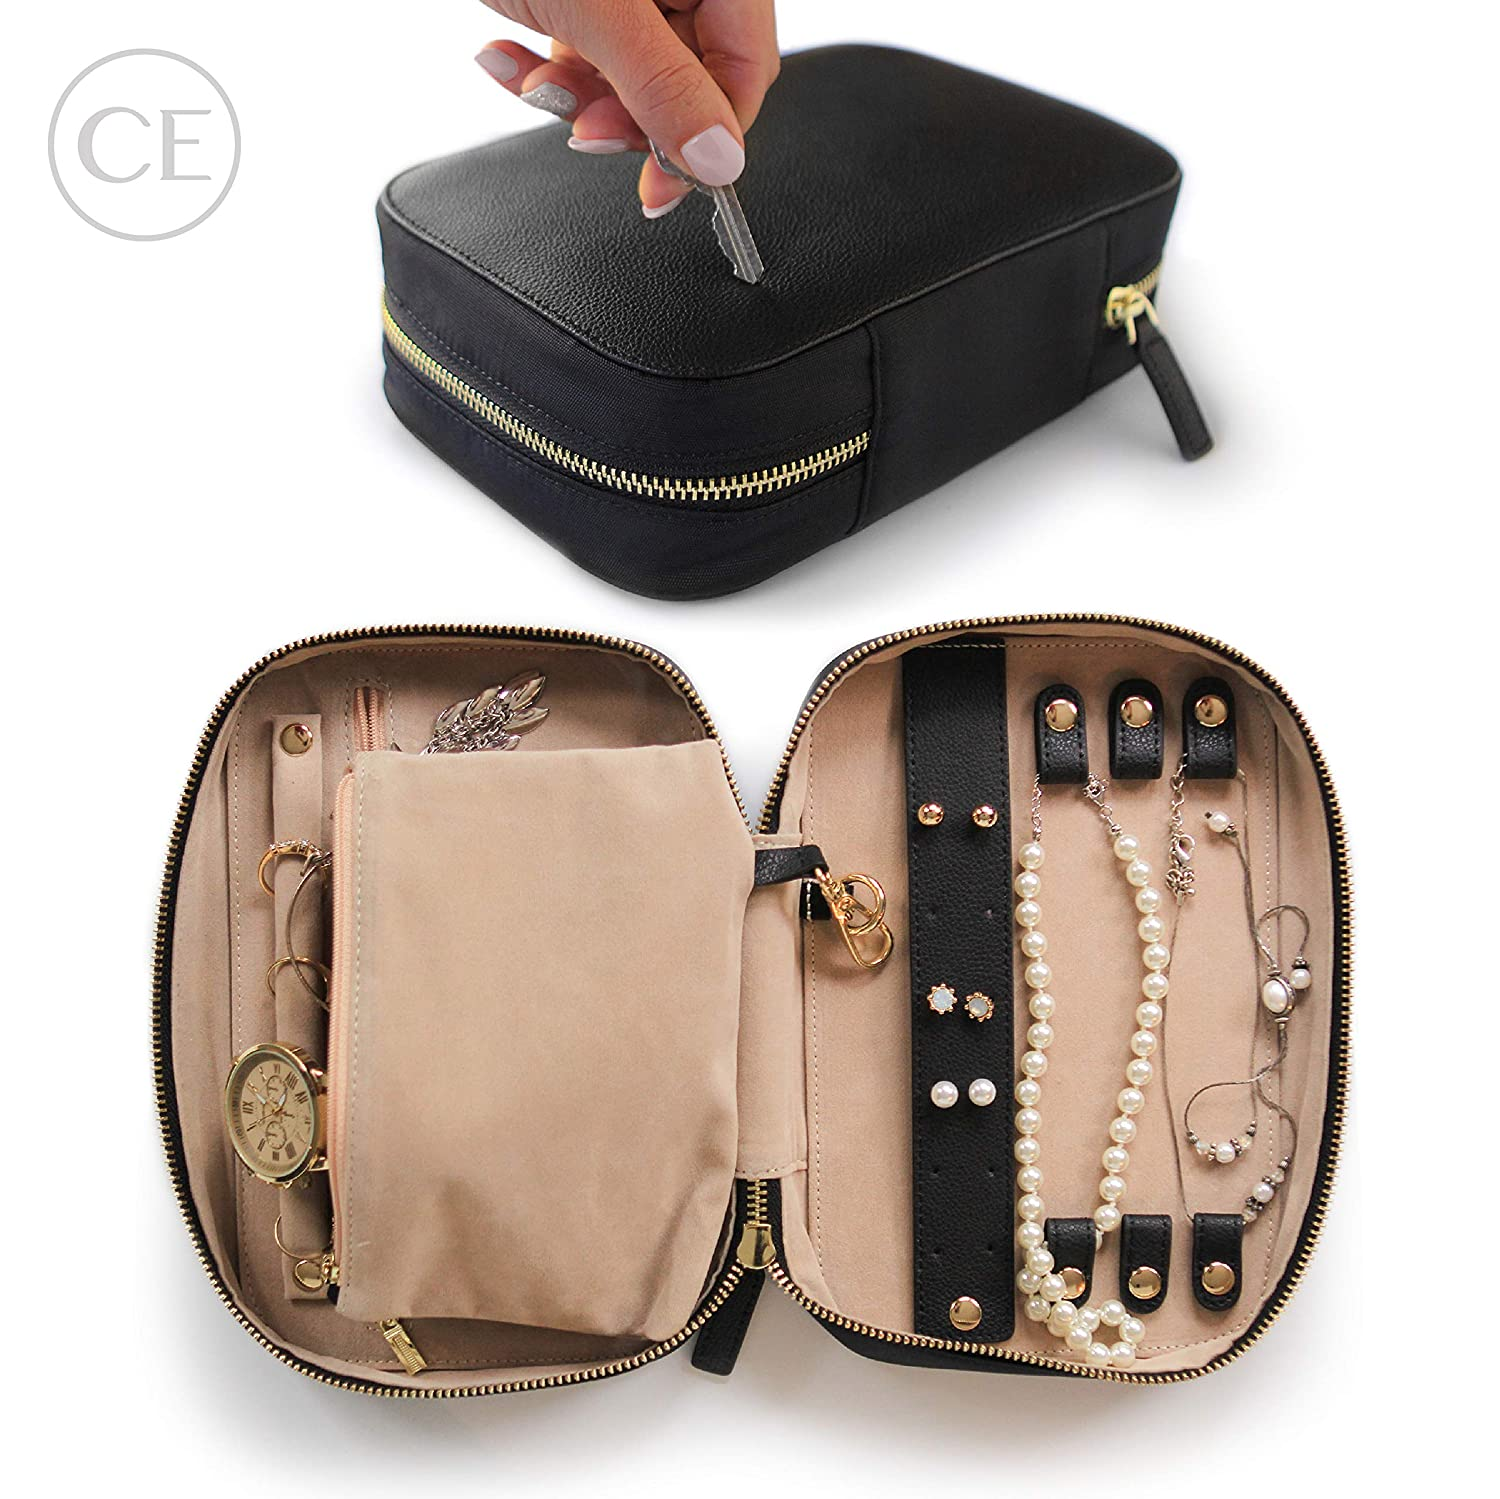 644733cd1 CASE ELEGANCE Large Jewelry Travel Organizer with Full-Grain Scratch-Proof  Leather